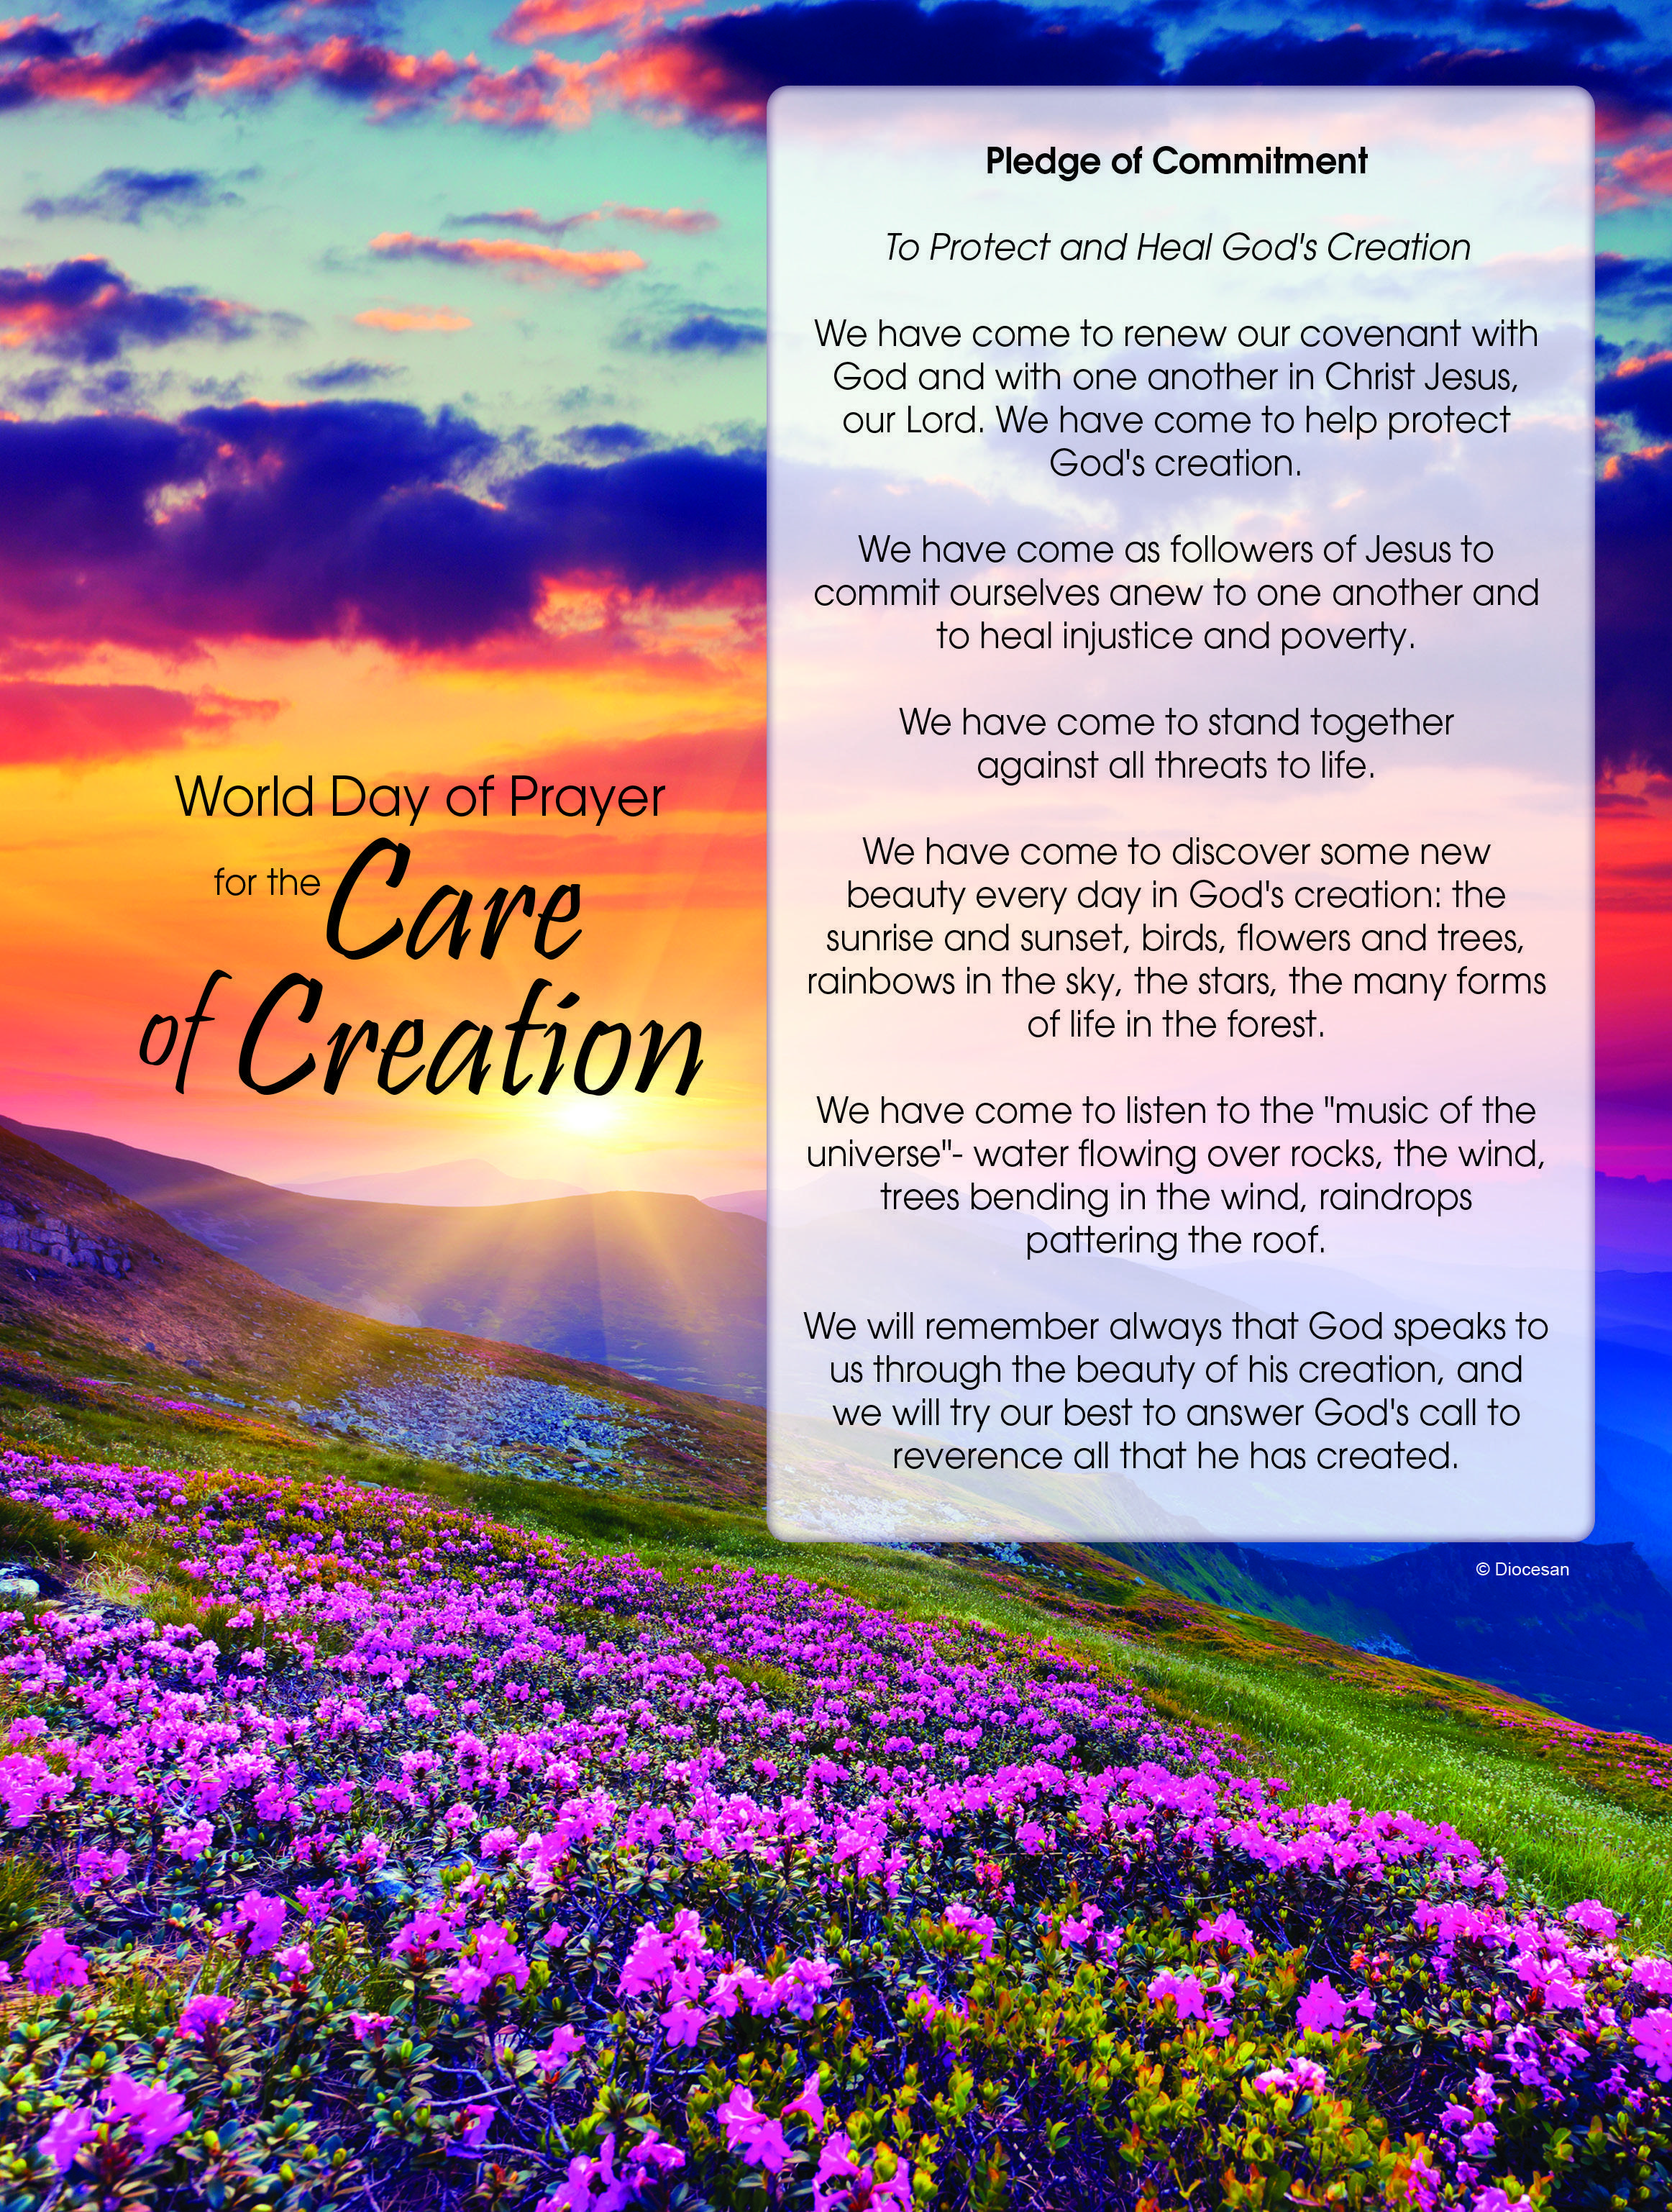 Day of Prayer for the Care of Creation Image